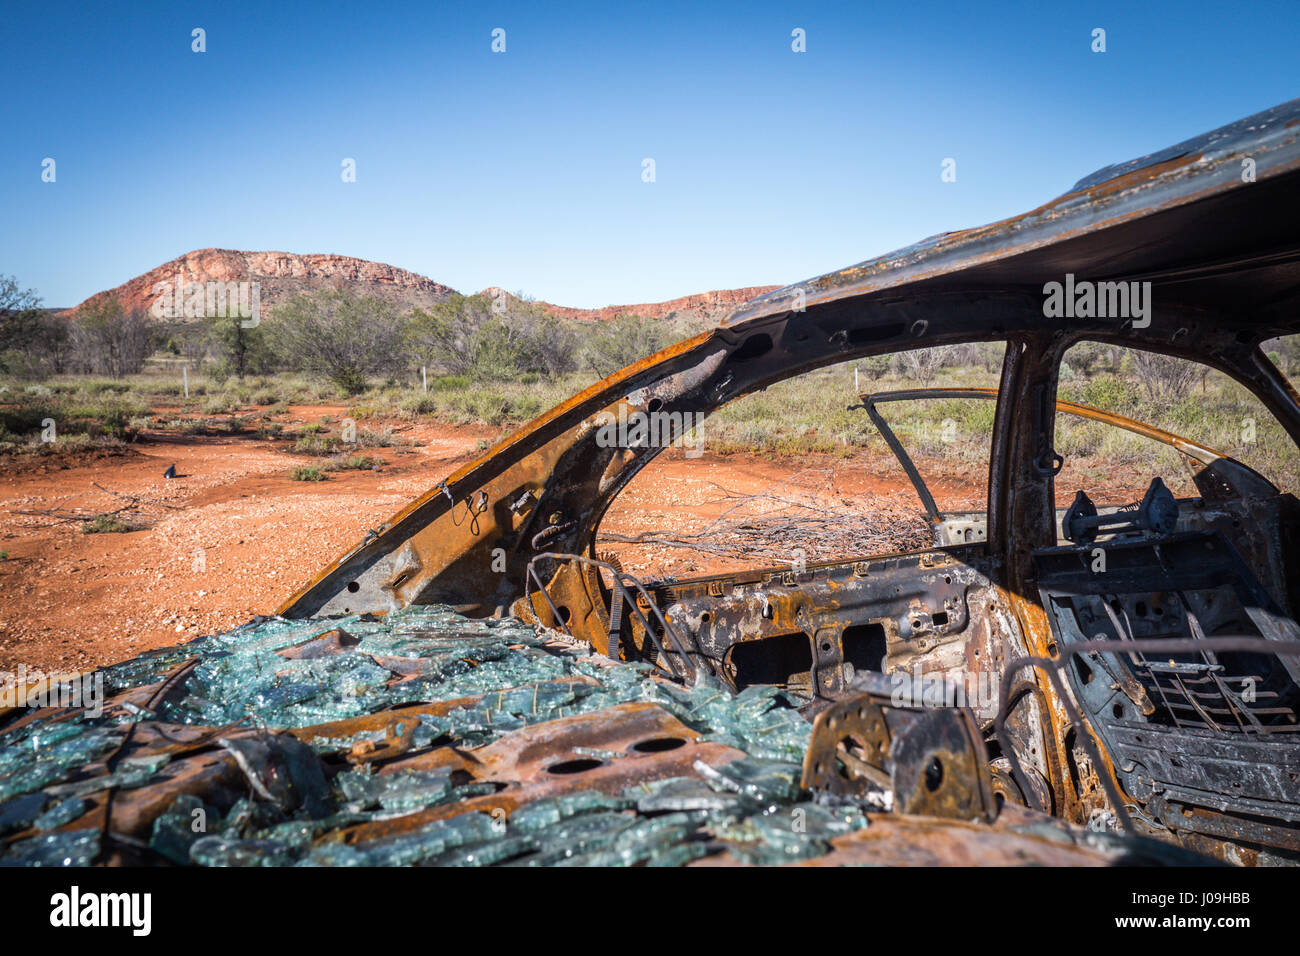 Abandoned rusty car in MacDonnell Ranges - Stock Image